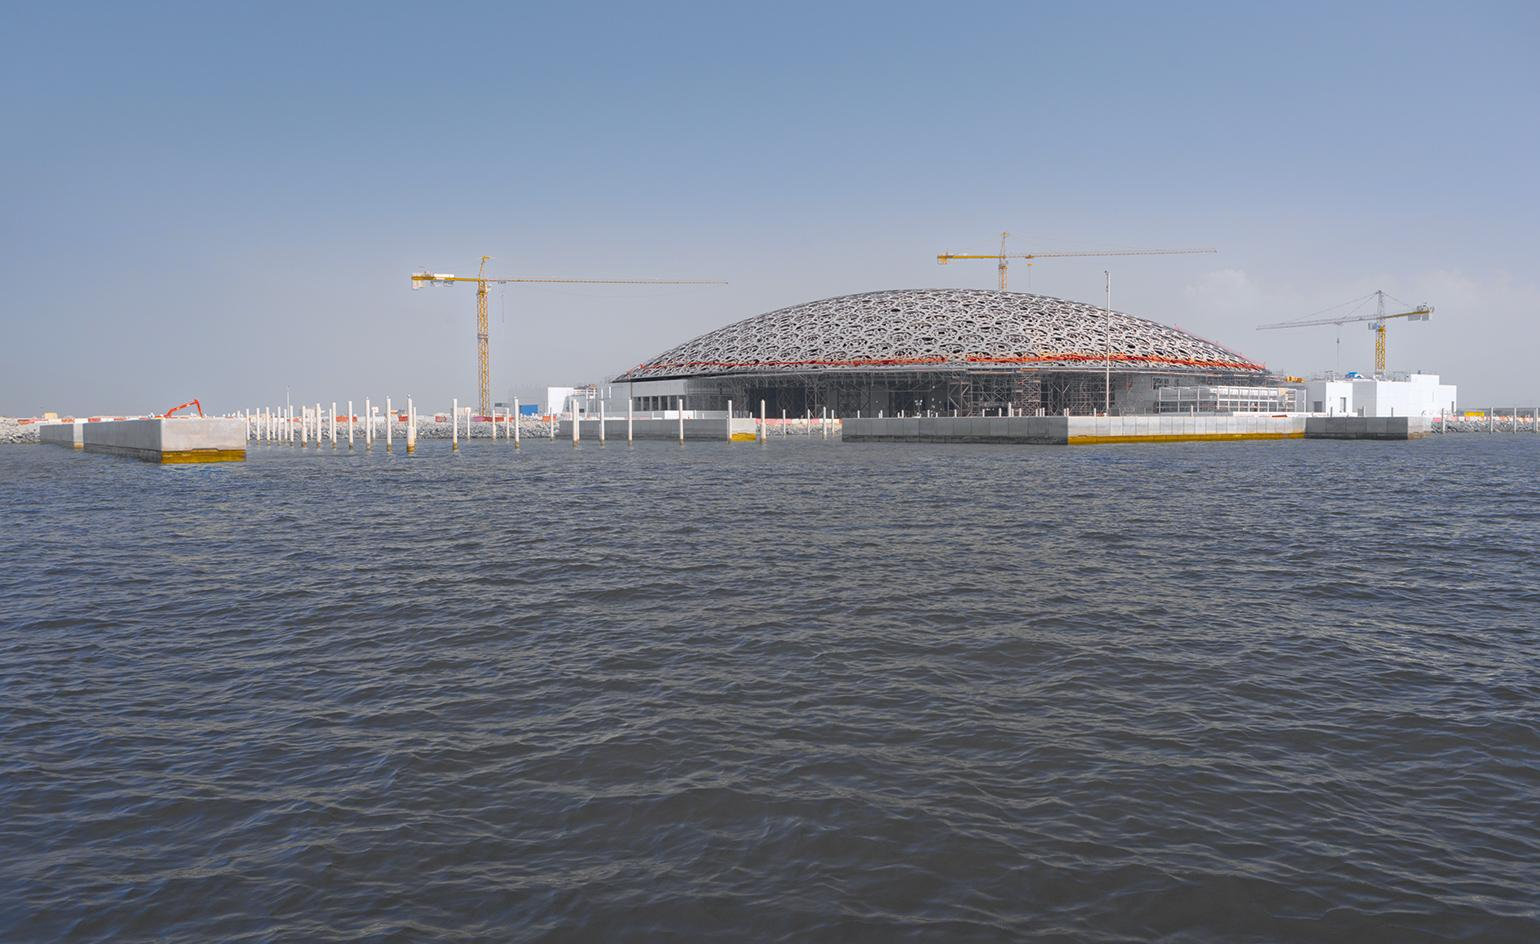 Jean Nouvel's Louvre Abu Dhabi is the UAE's new cultural superdome